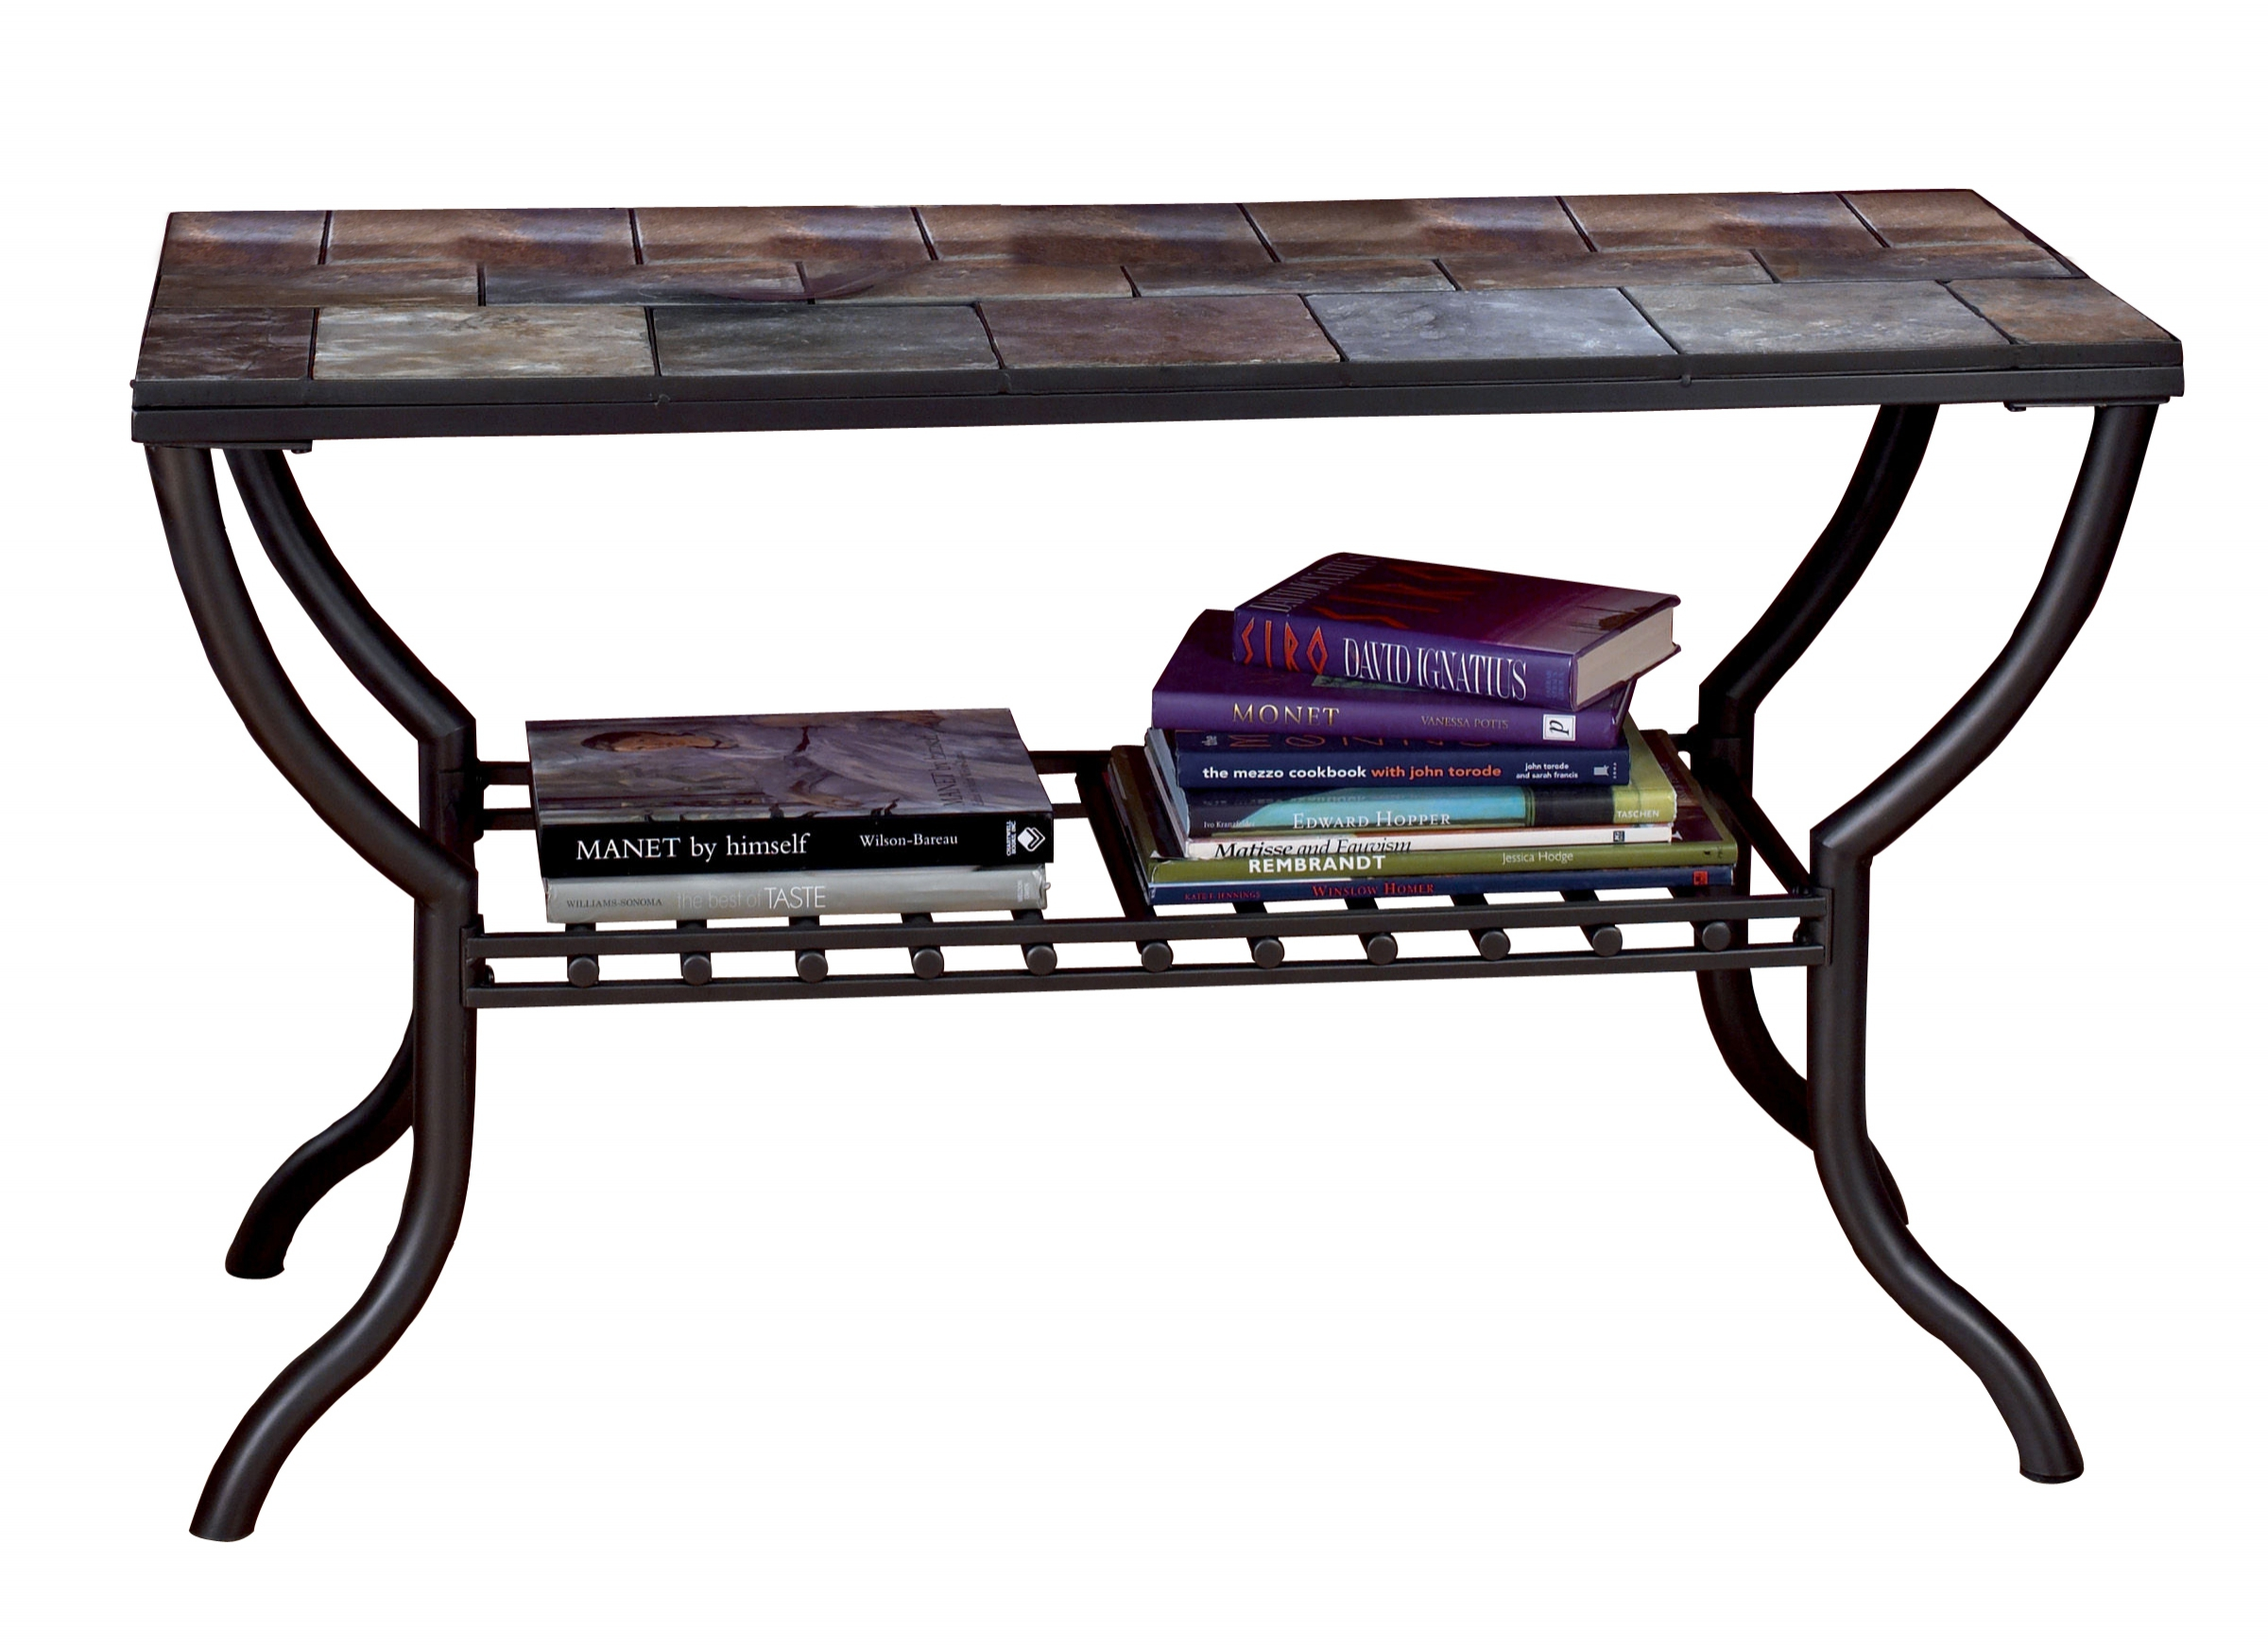 Ashley Furniture Antigo Sofa Table The Classy Home